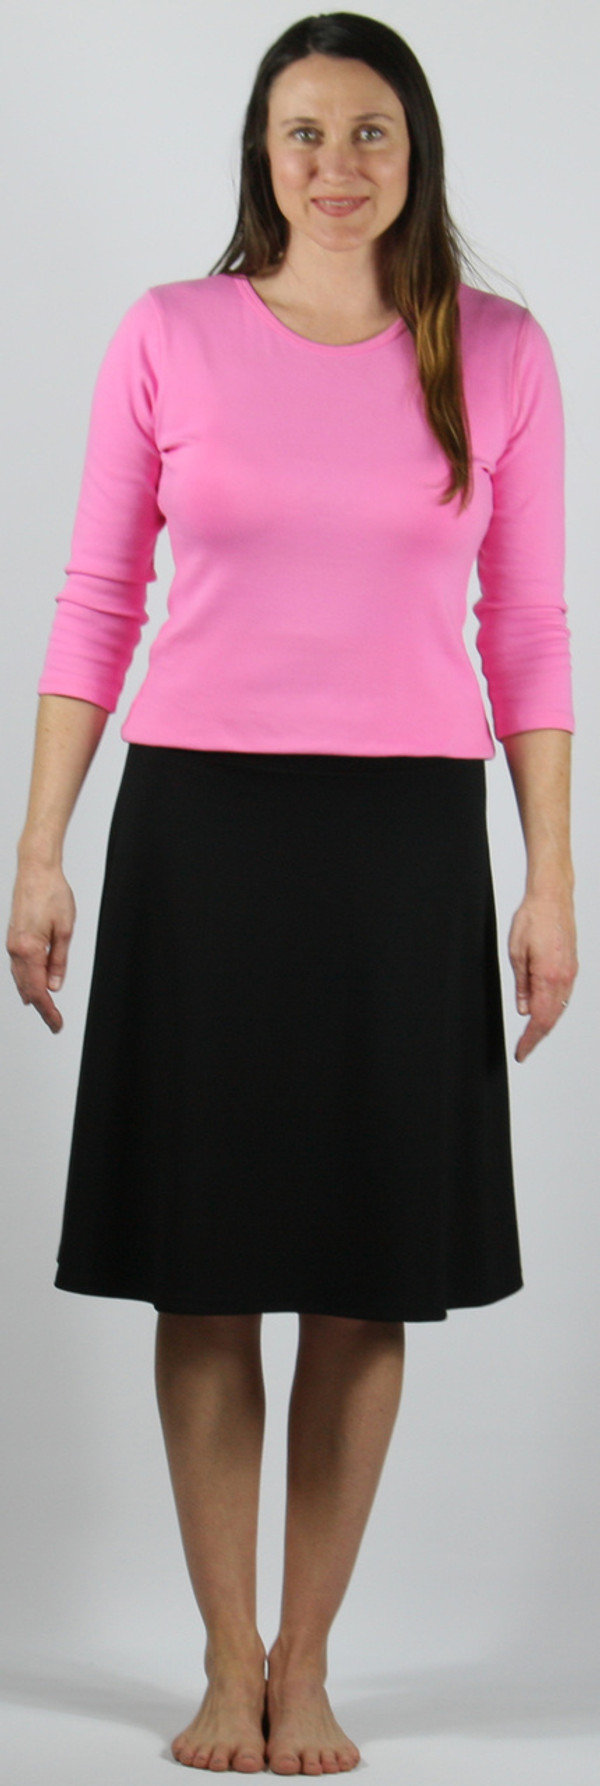 "A-line flippy skirt, ponte knit.  Model is 5'8"", wearing size small."